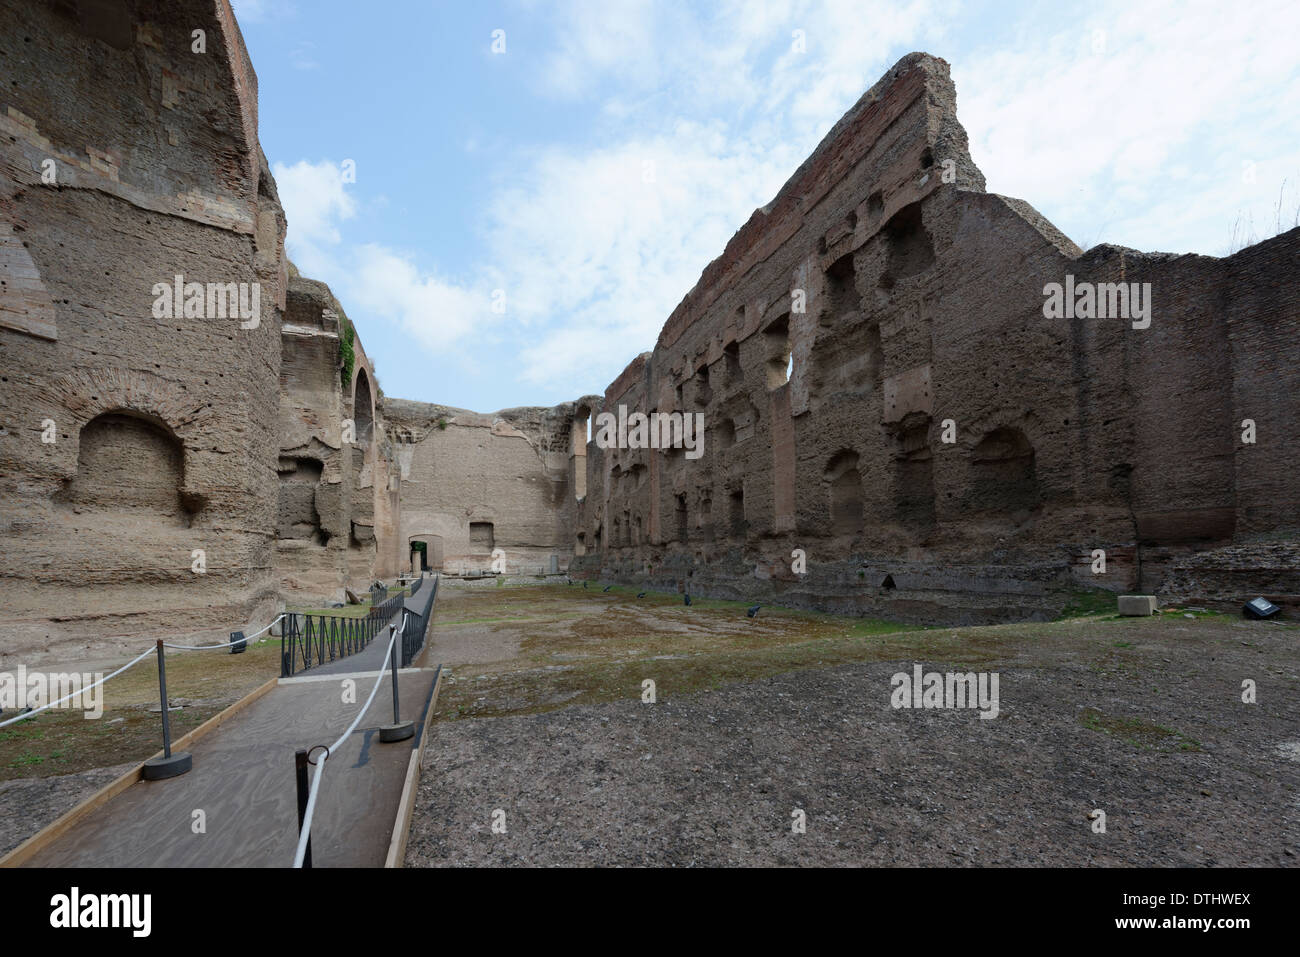 The open-air one metre deep Olympic sized Natatorium or swimming pool at north end Baths Caracalla Rome Italy Baths - Stock Image